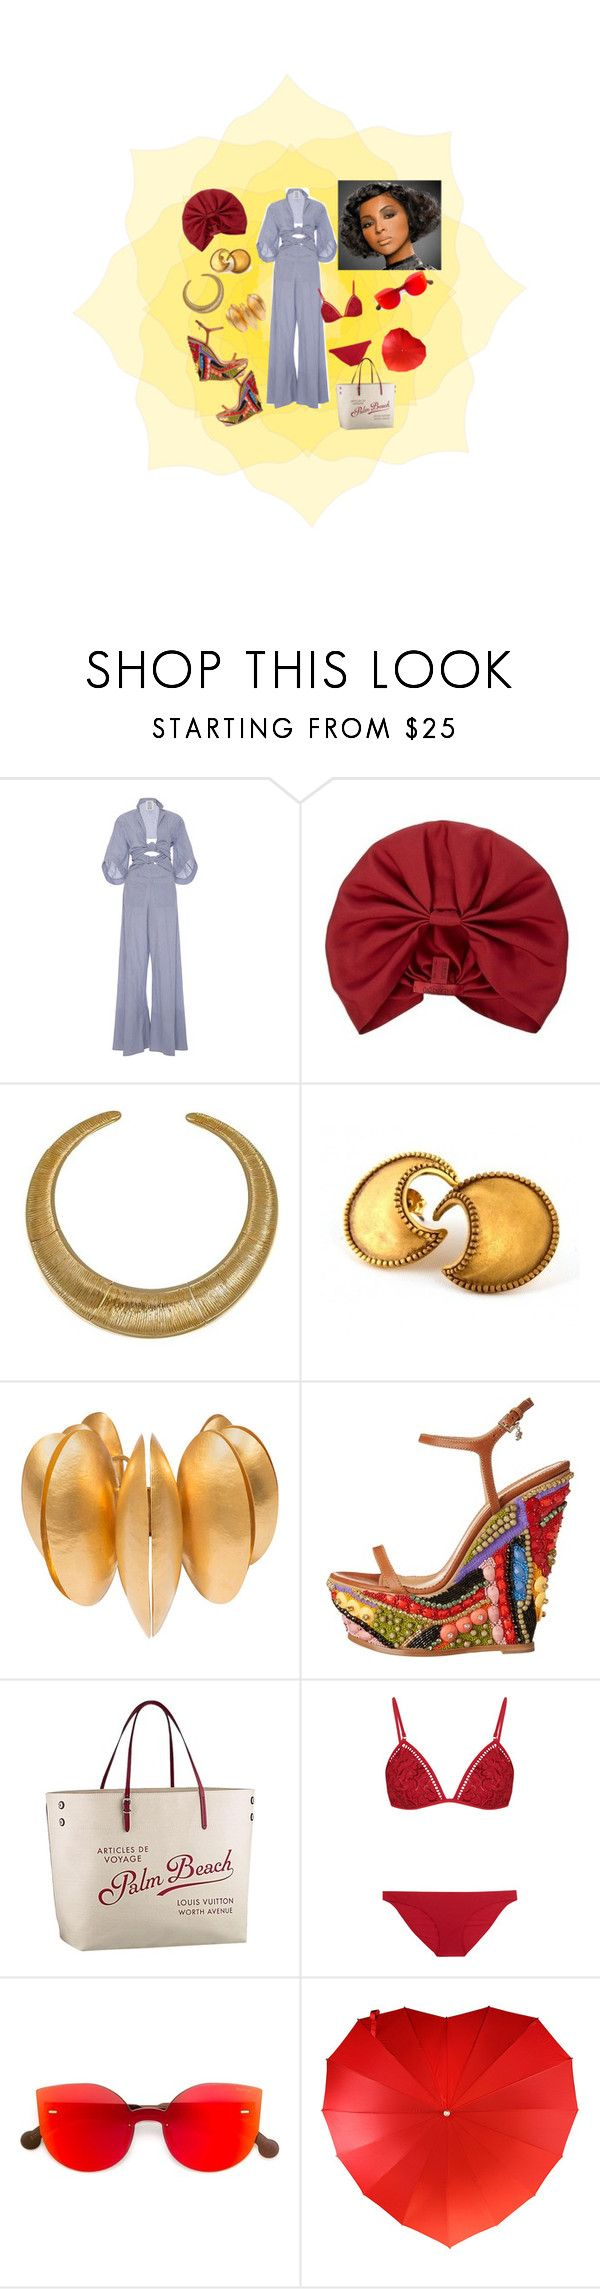 """""""Heat #2"""" by joy-ambitious-jones ❤ liked on Polyvore featuring Rosie Assoulin, Valentino, Hissia, Dsquared2, Louis Vuitton, Zimmermann and RetroSuperFuture"""